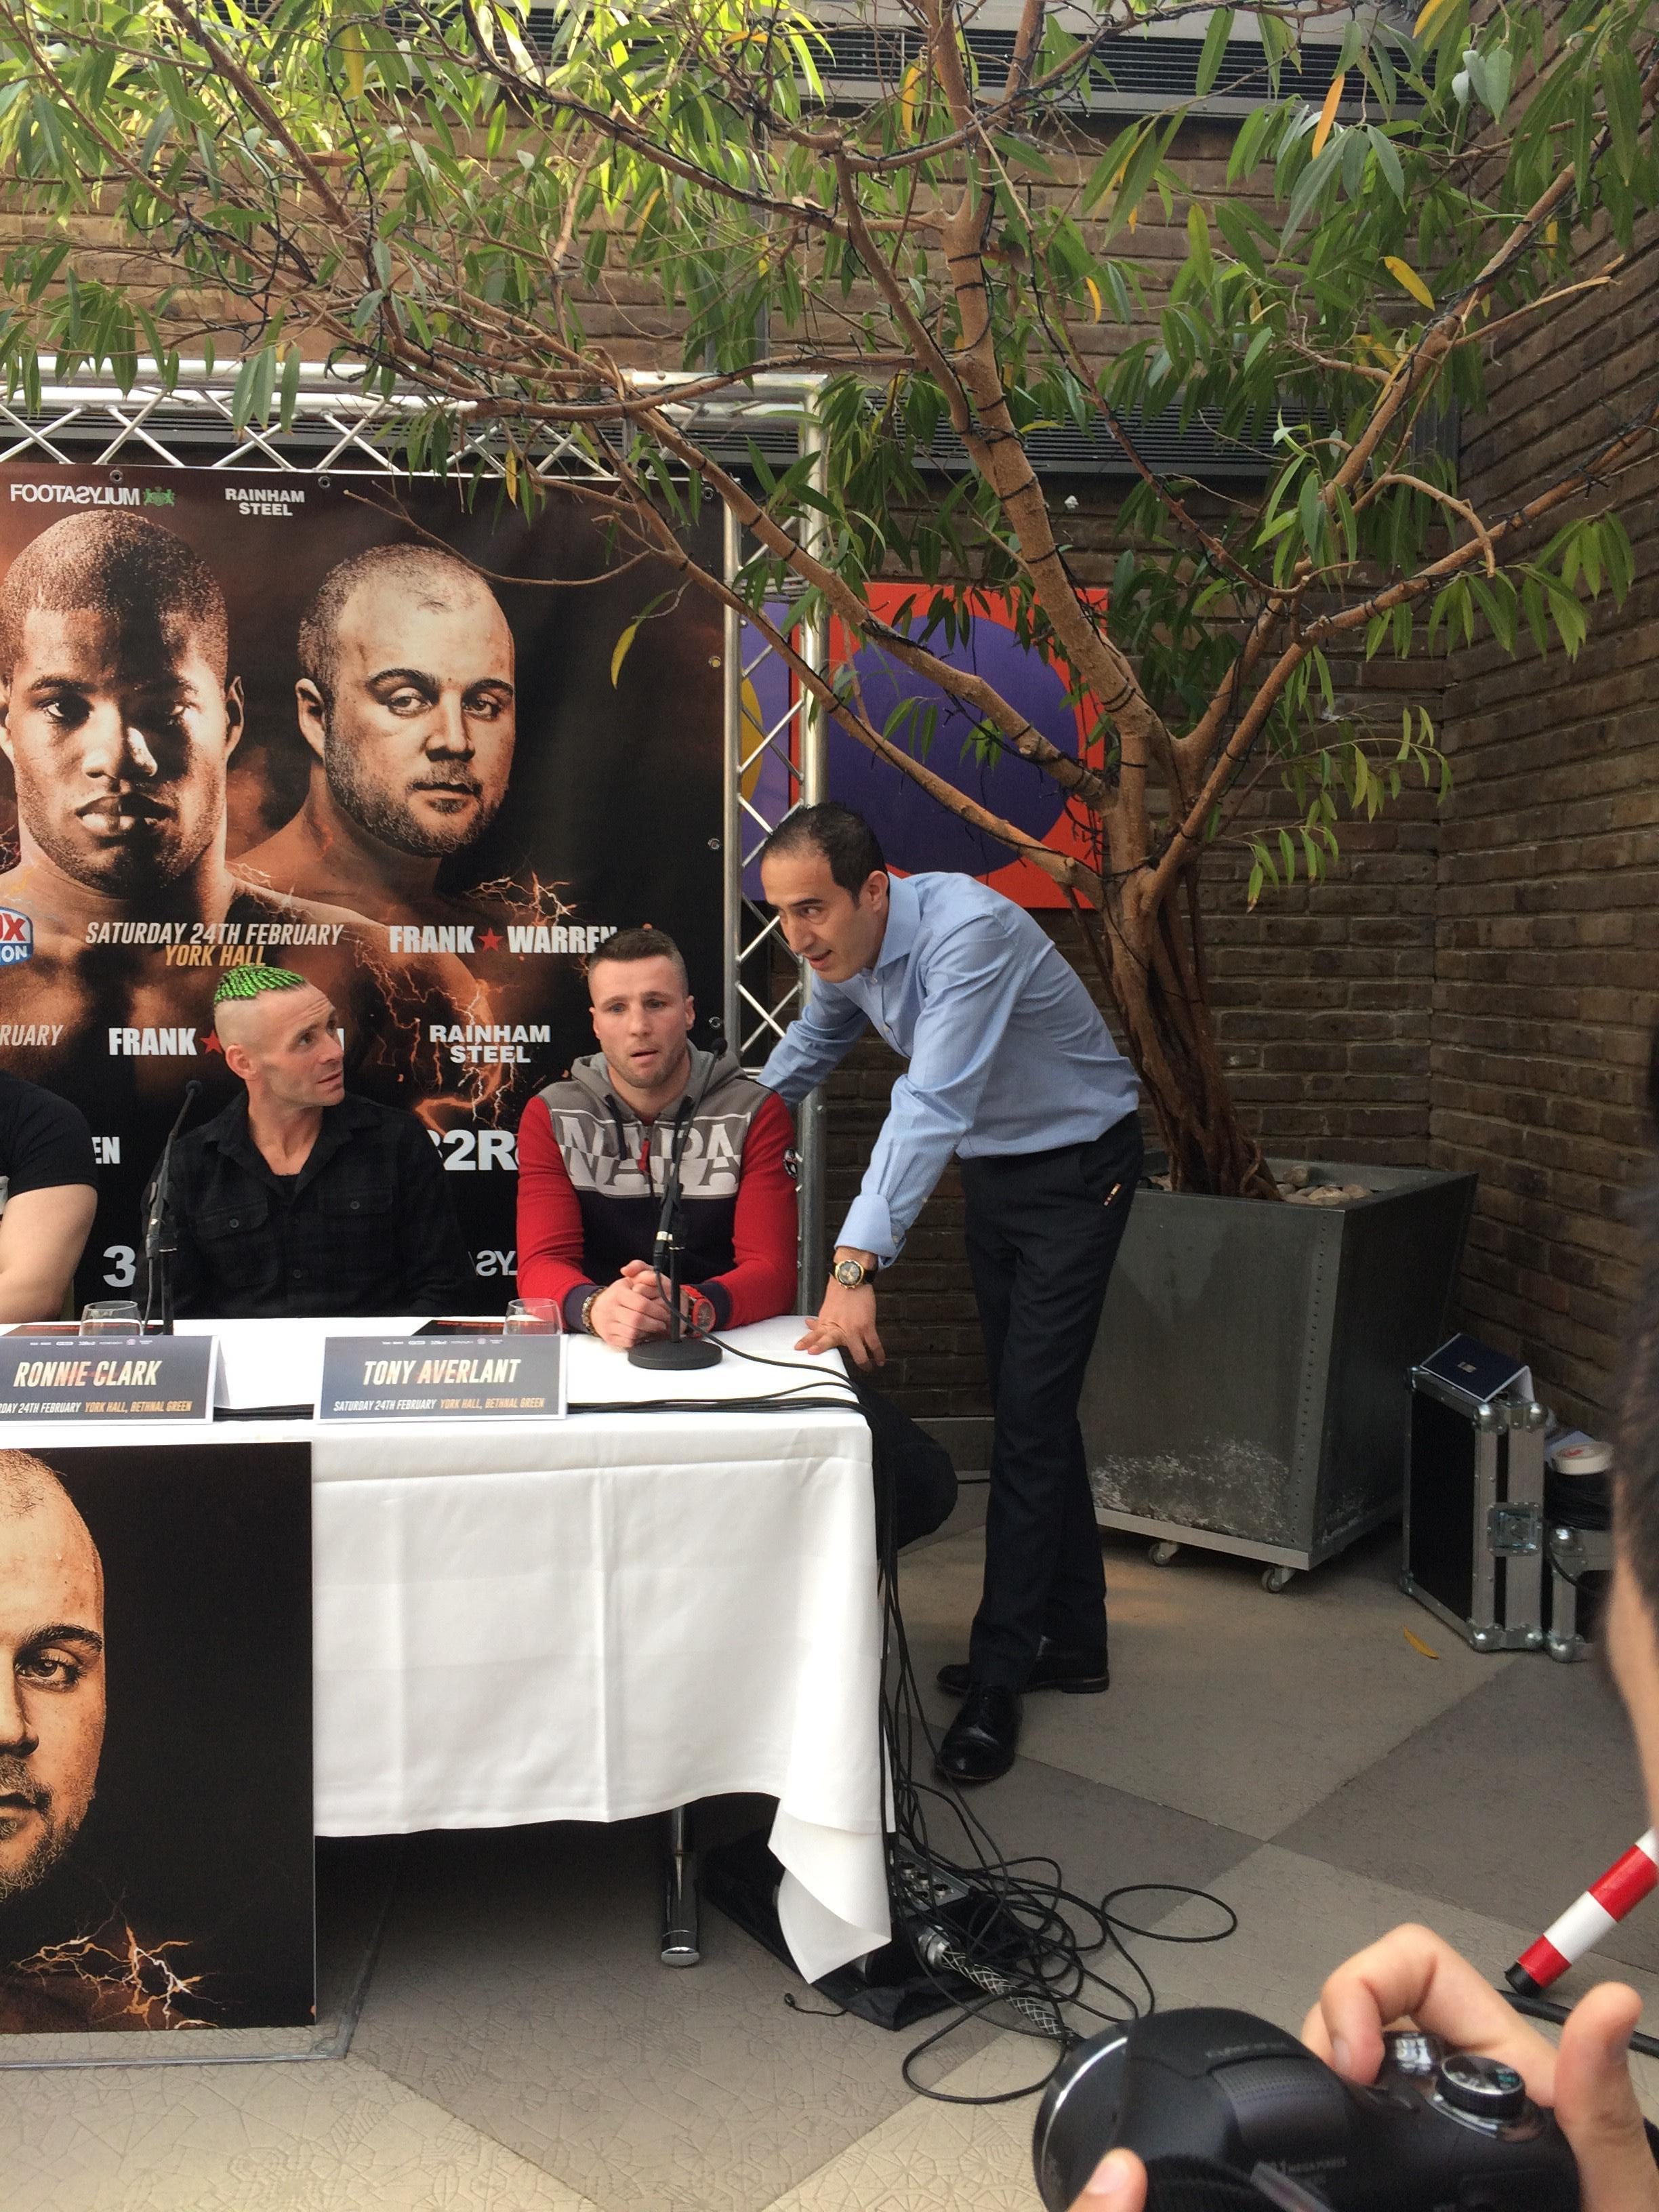 Frank Warren later apologised to Tony Averlant for not having a translator in the building